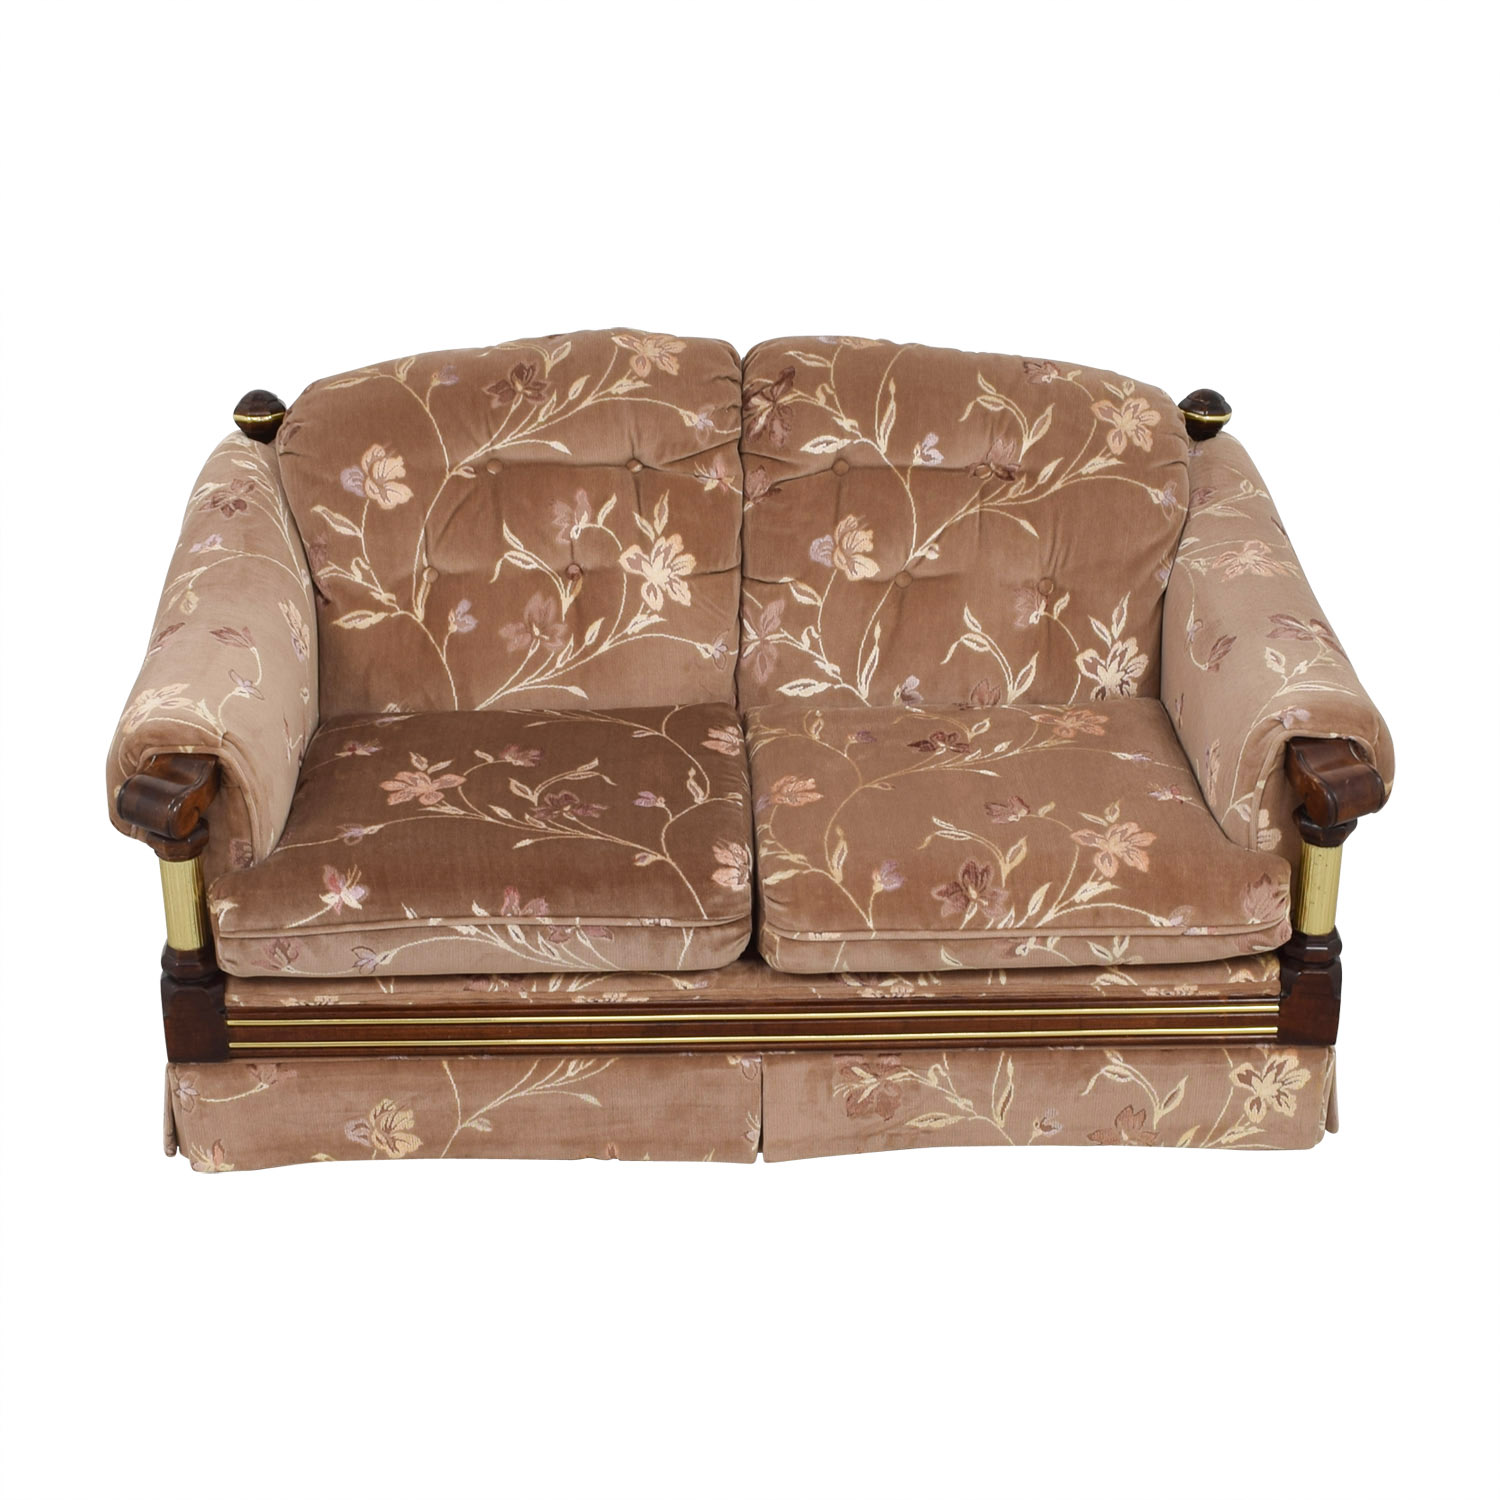 Floral Tufted Loveseat used